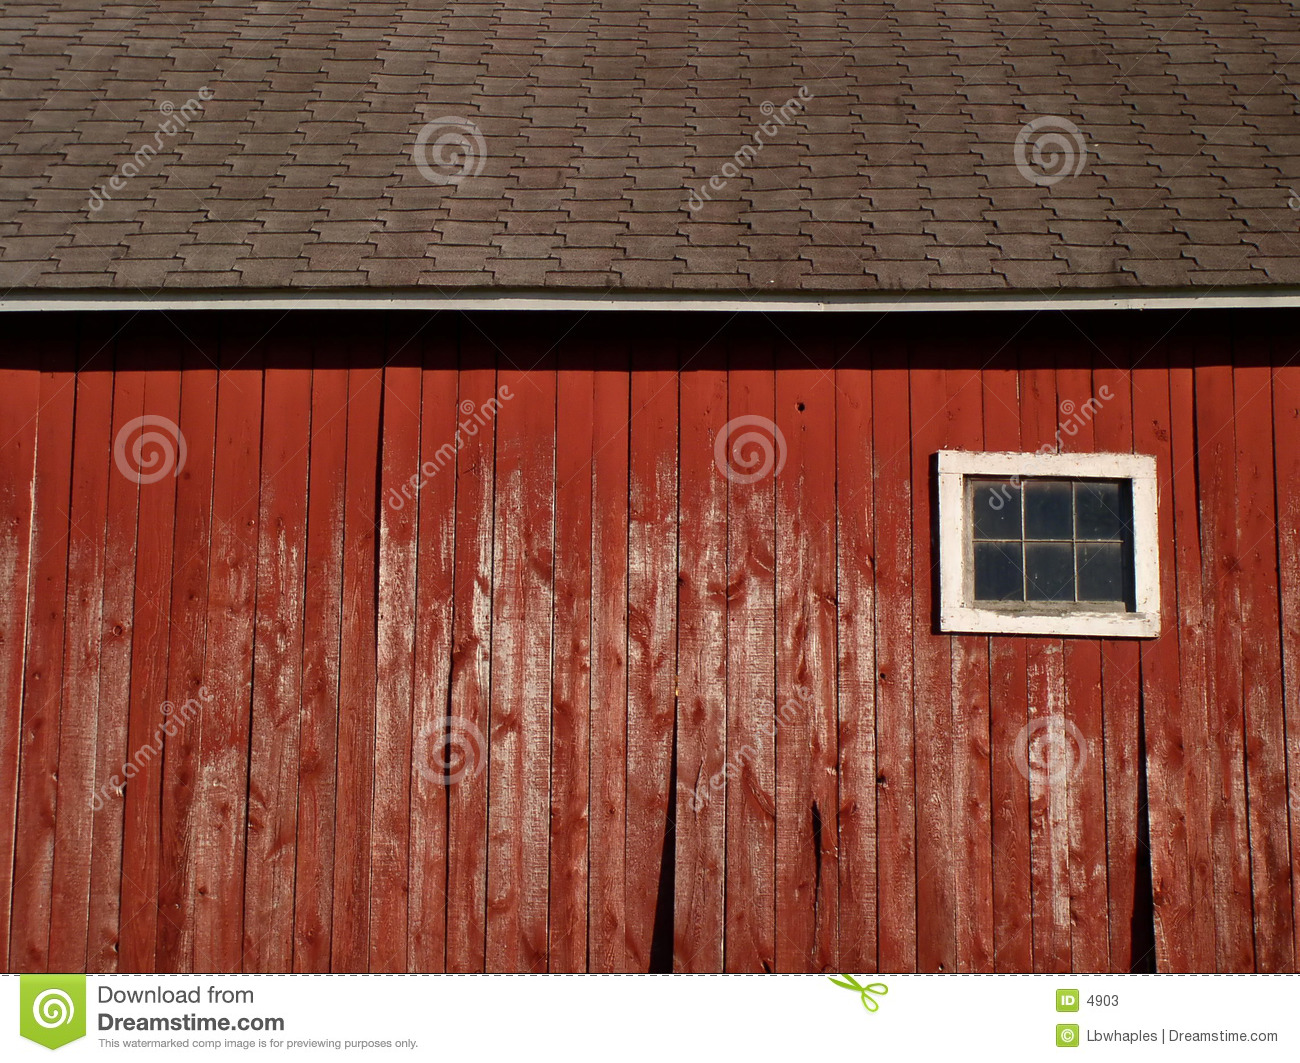 The broad side of a barn